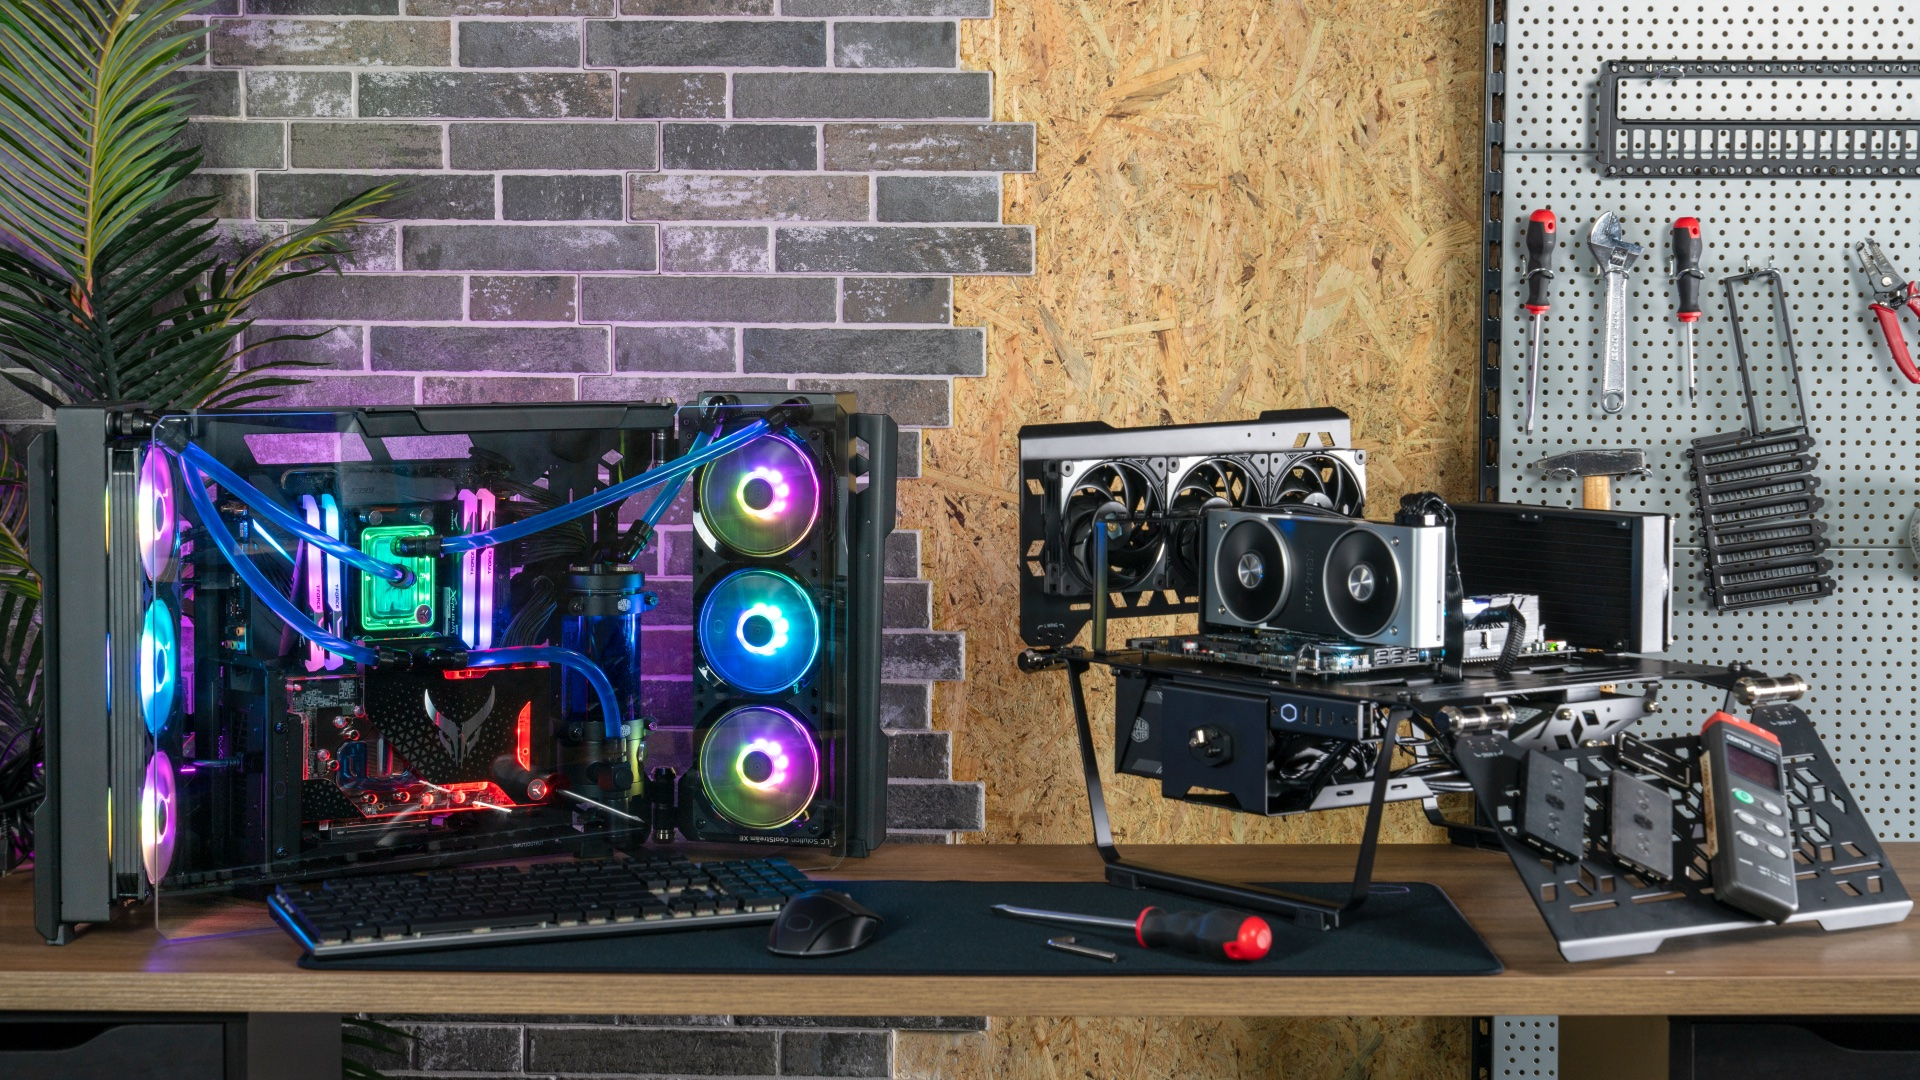 Two examples of how to build a PC using Cooler Master's MasterFrame 700 case